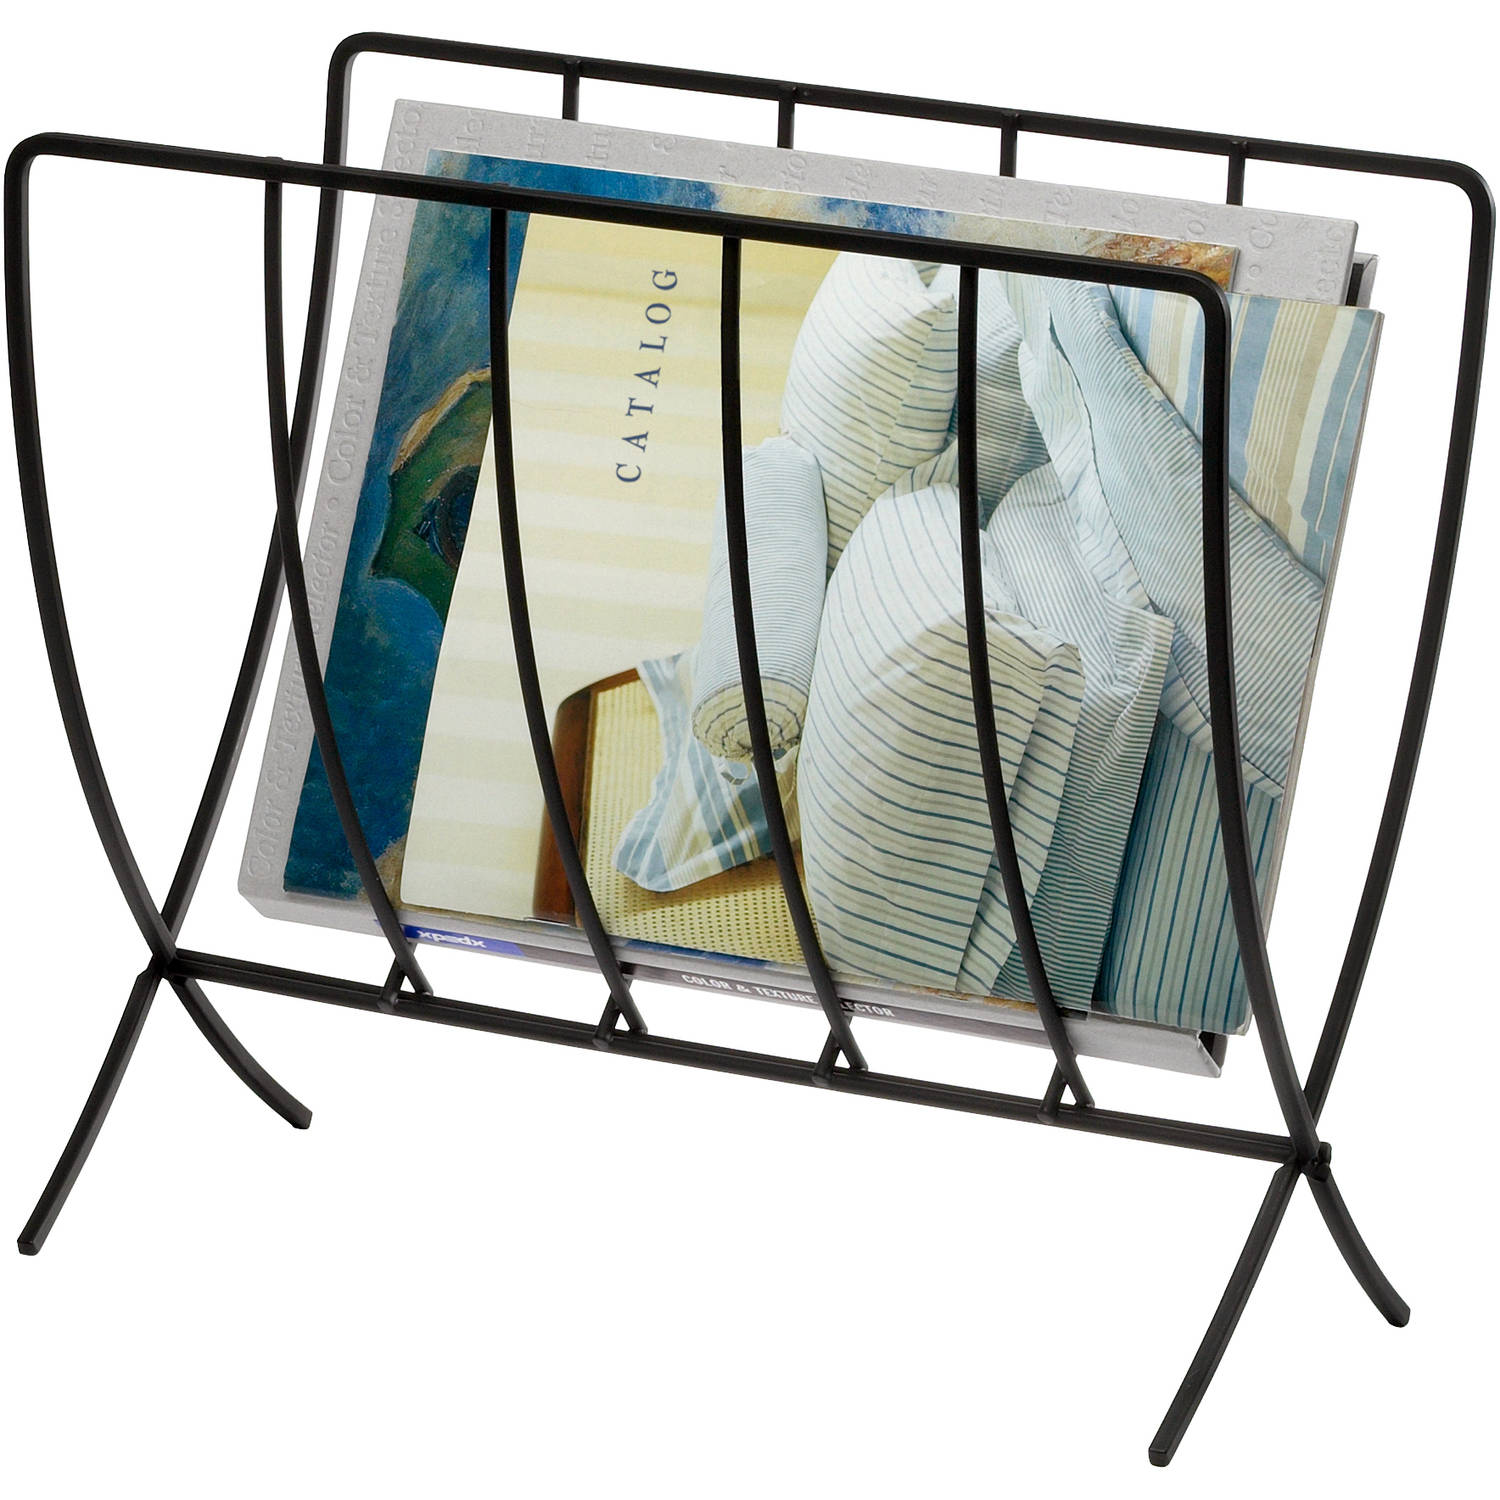 Spectrum Seville Magazine Rack, Black by Spectrum